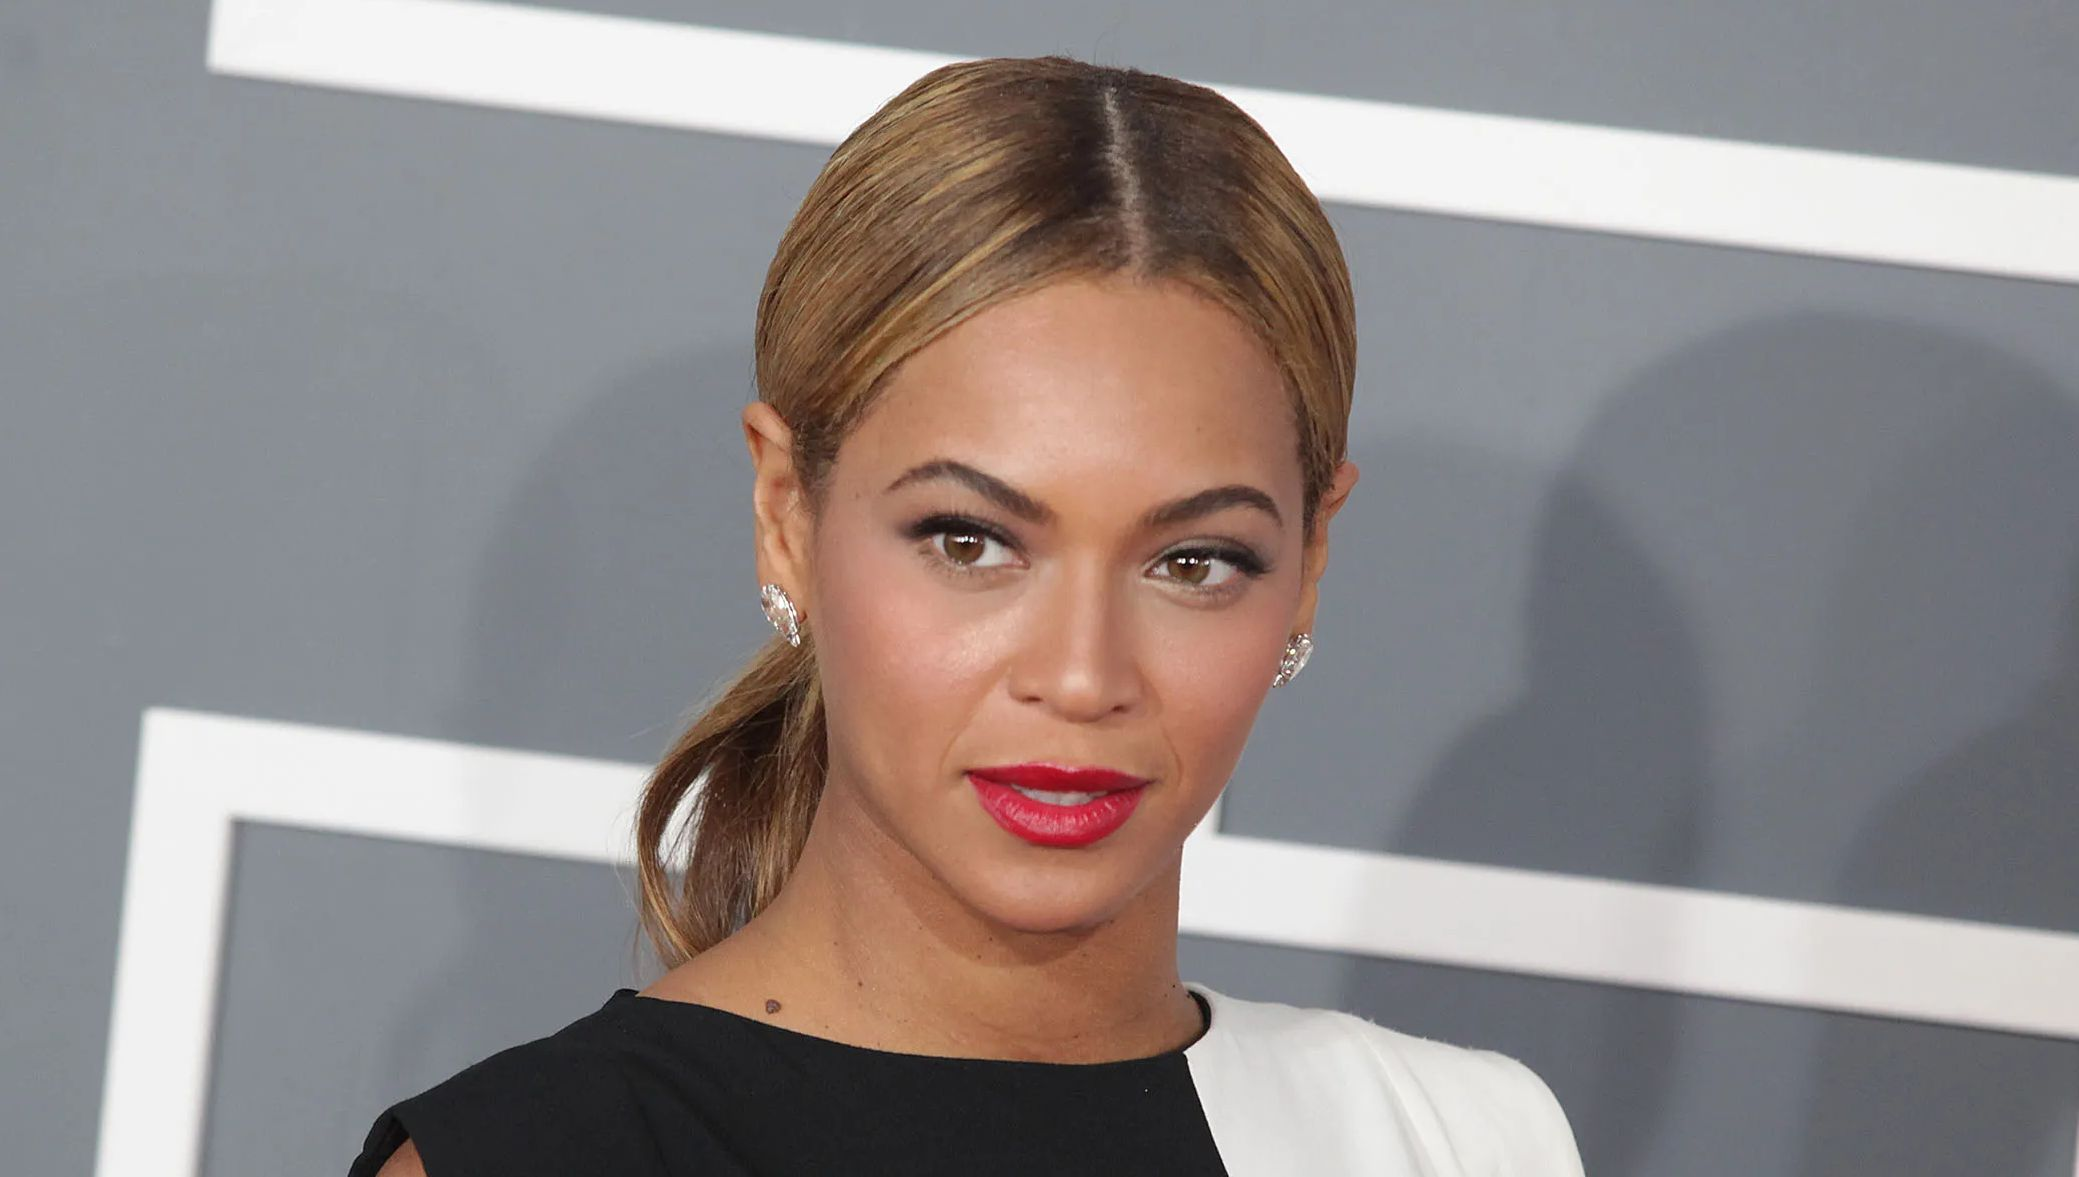 Beyonce on the red carpet.